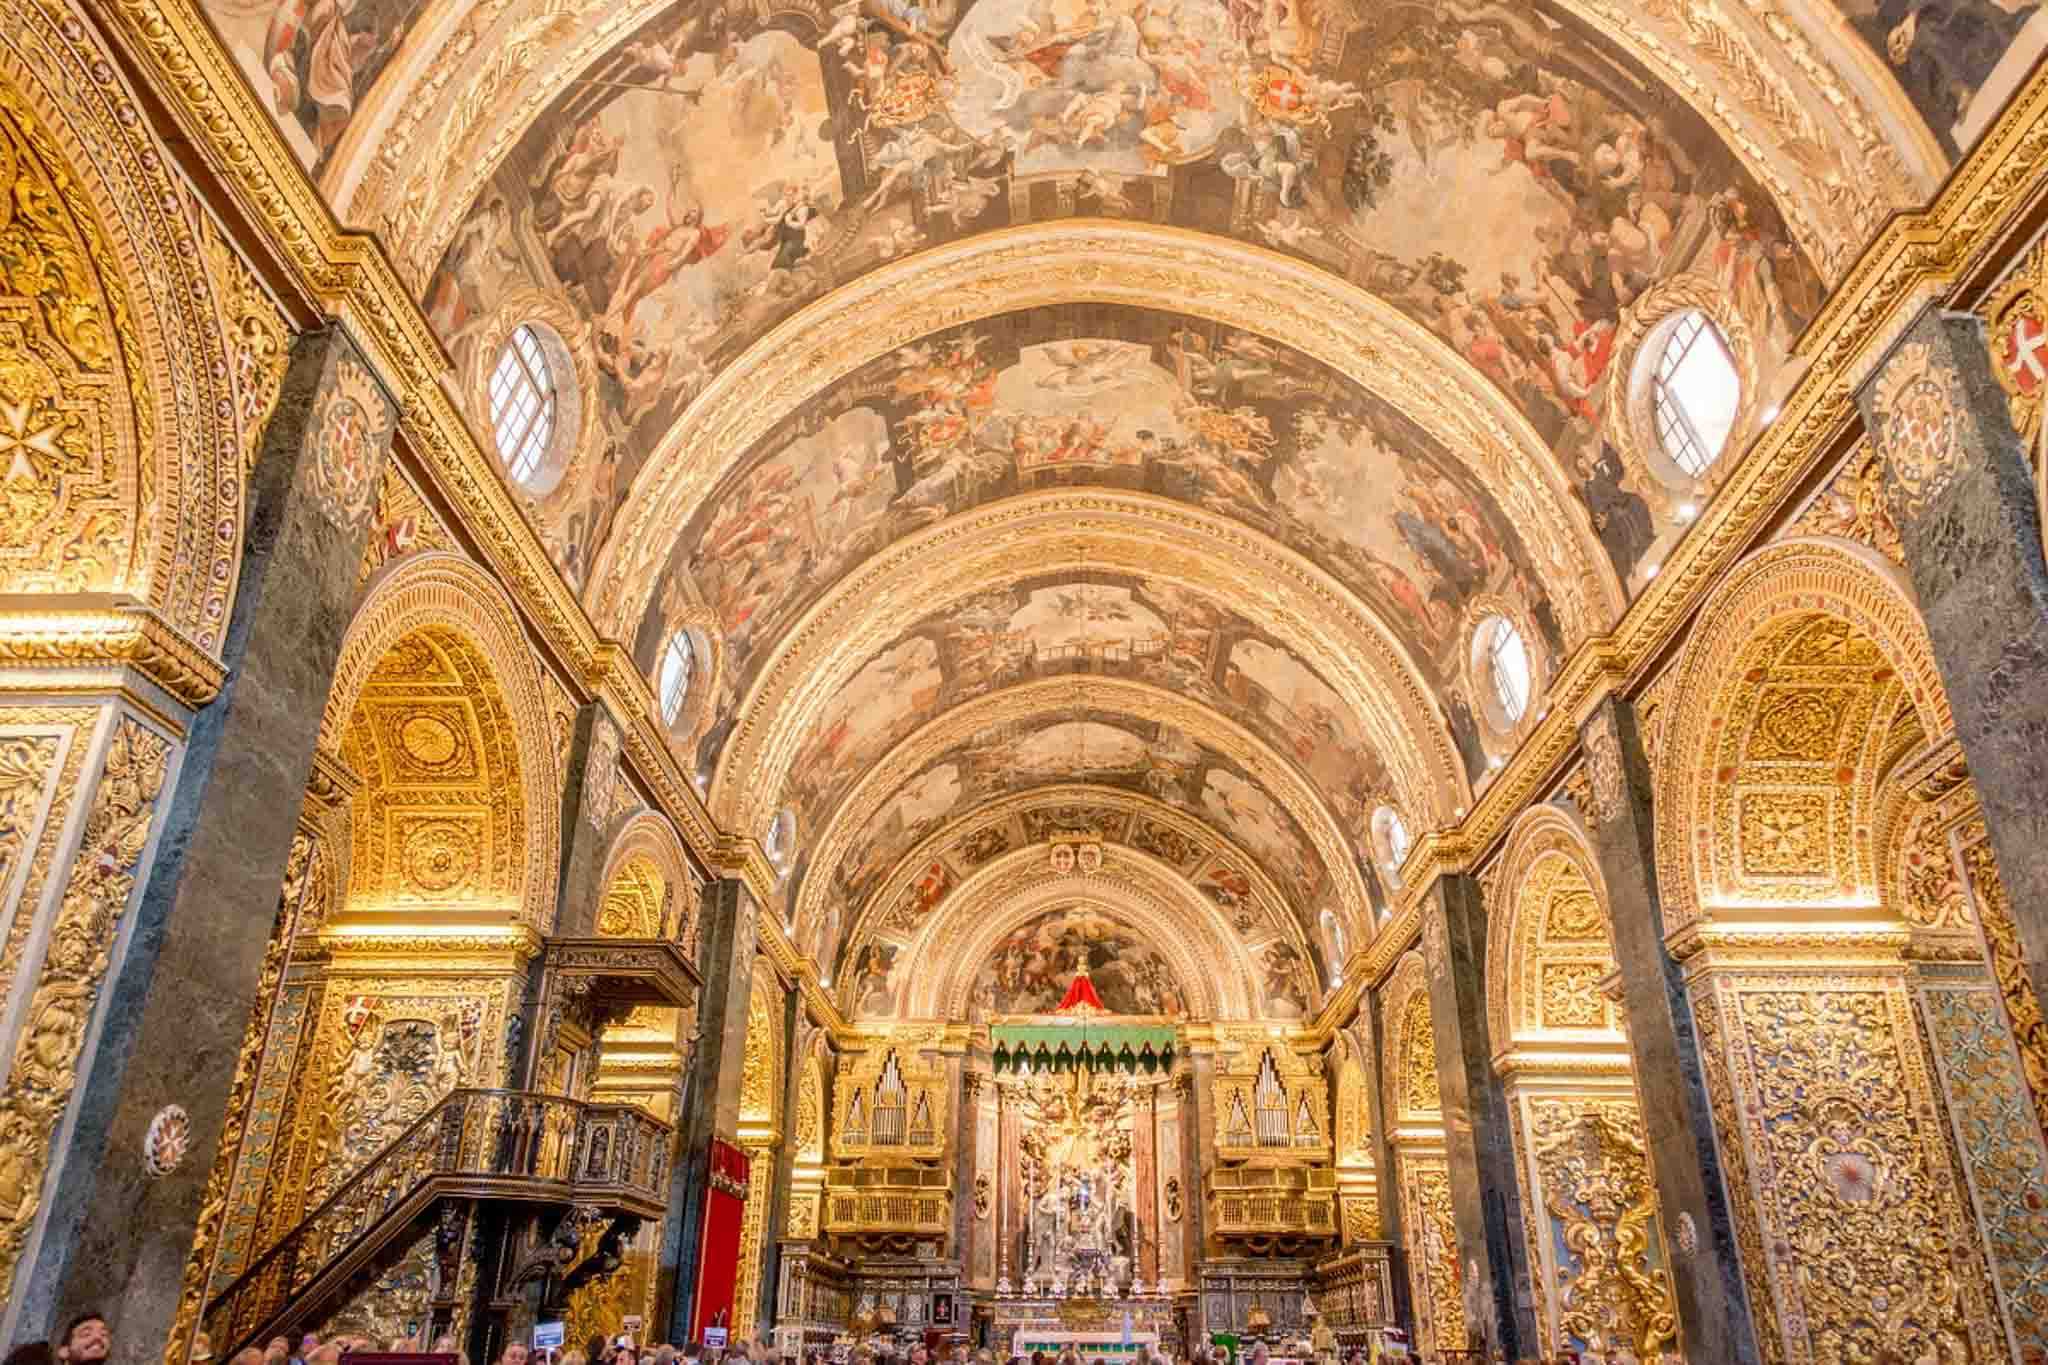 The nave of St. John's Co-Cathedral in Valletta, Malta